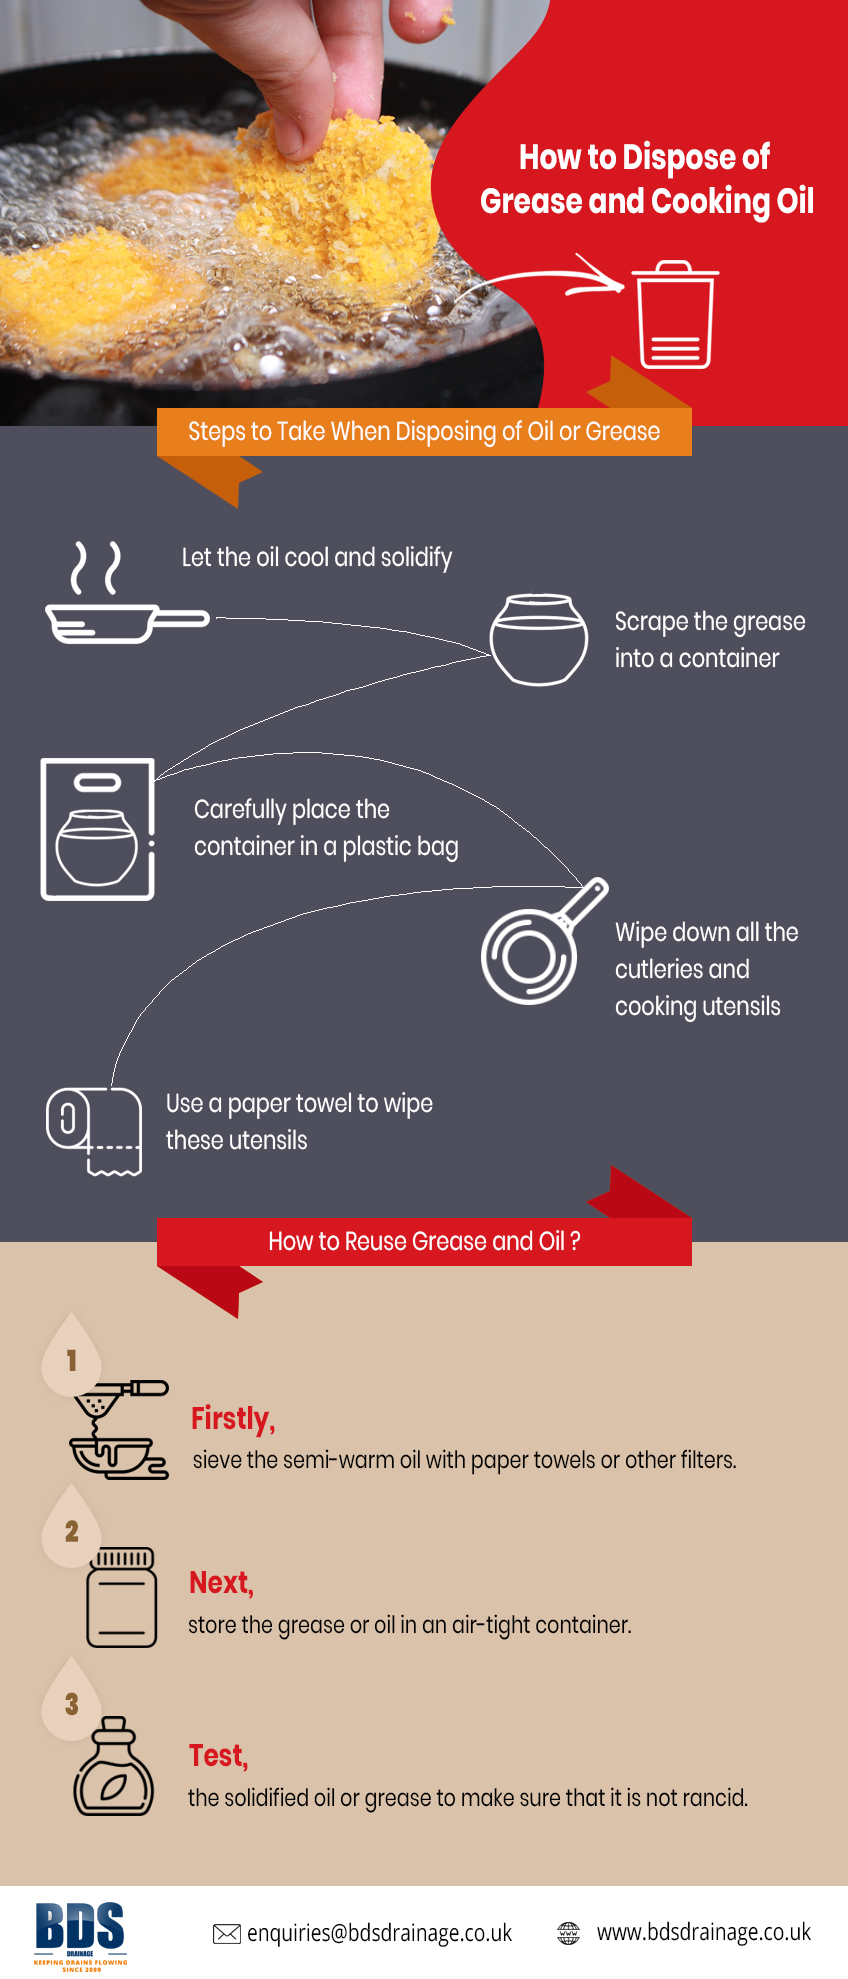 How-to-Dispose-of-Grease-and-Cooking-Oil